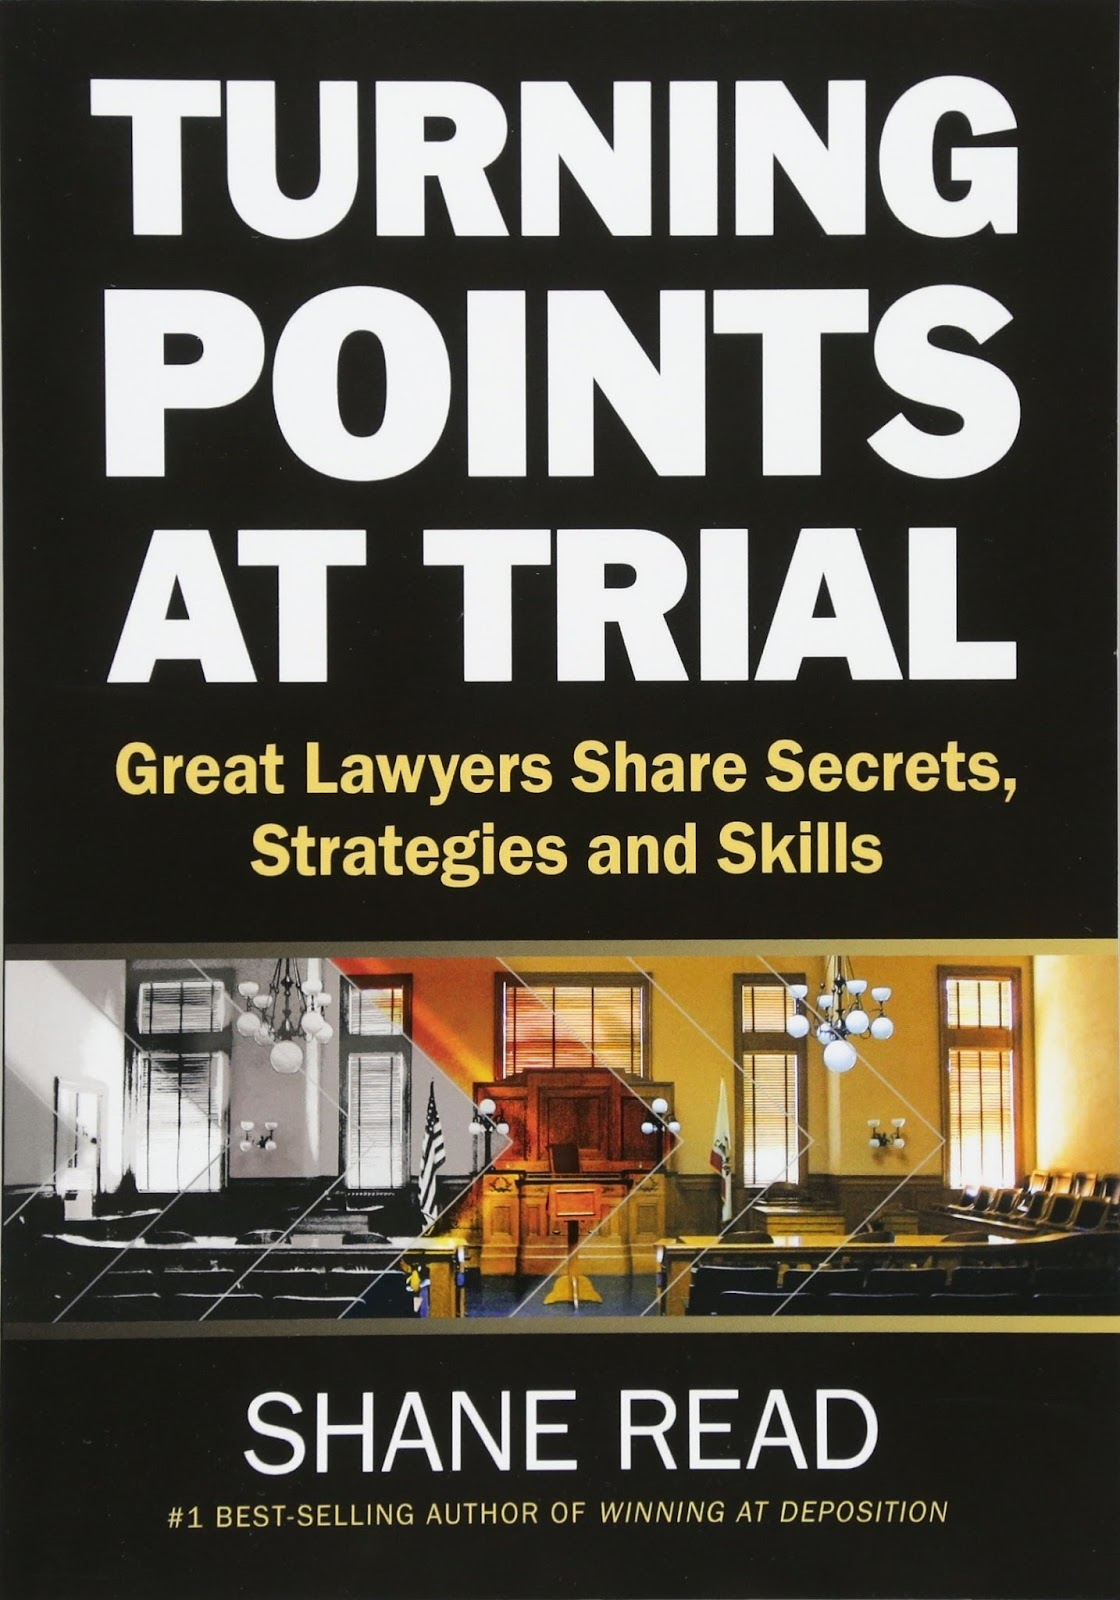 Cross-Examination Blog: TURNING POINTS AT TRIAL AND CROSS